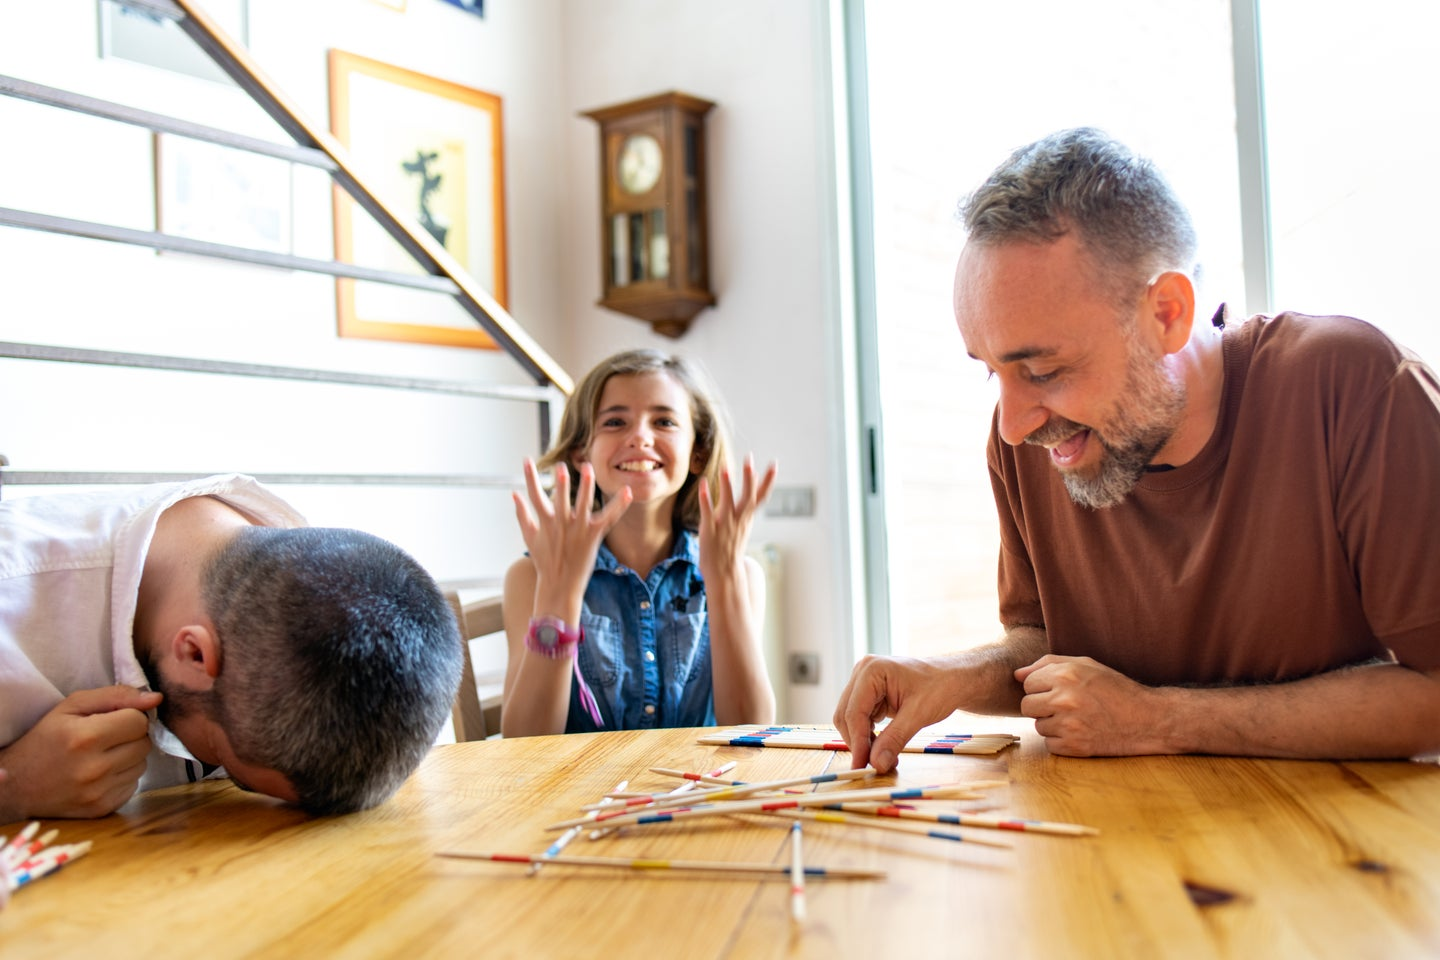 parents playing Pick Up Sticks with their kids